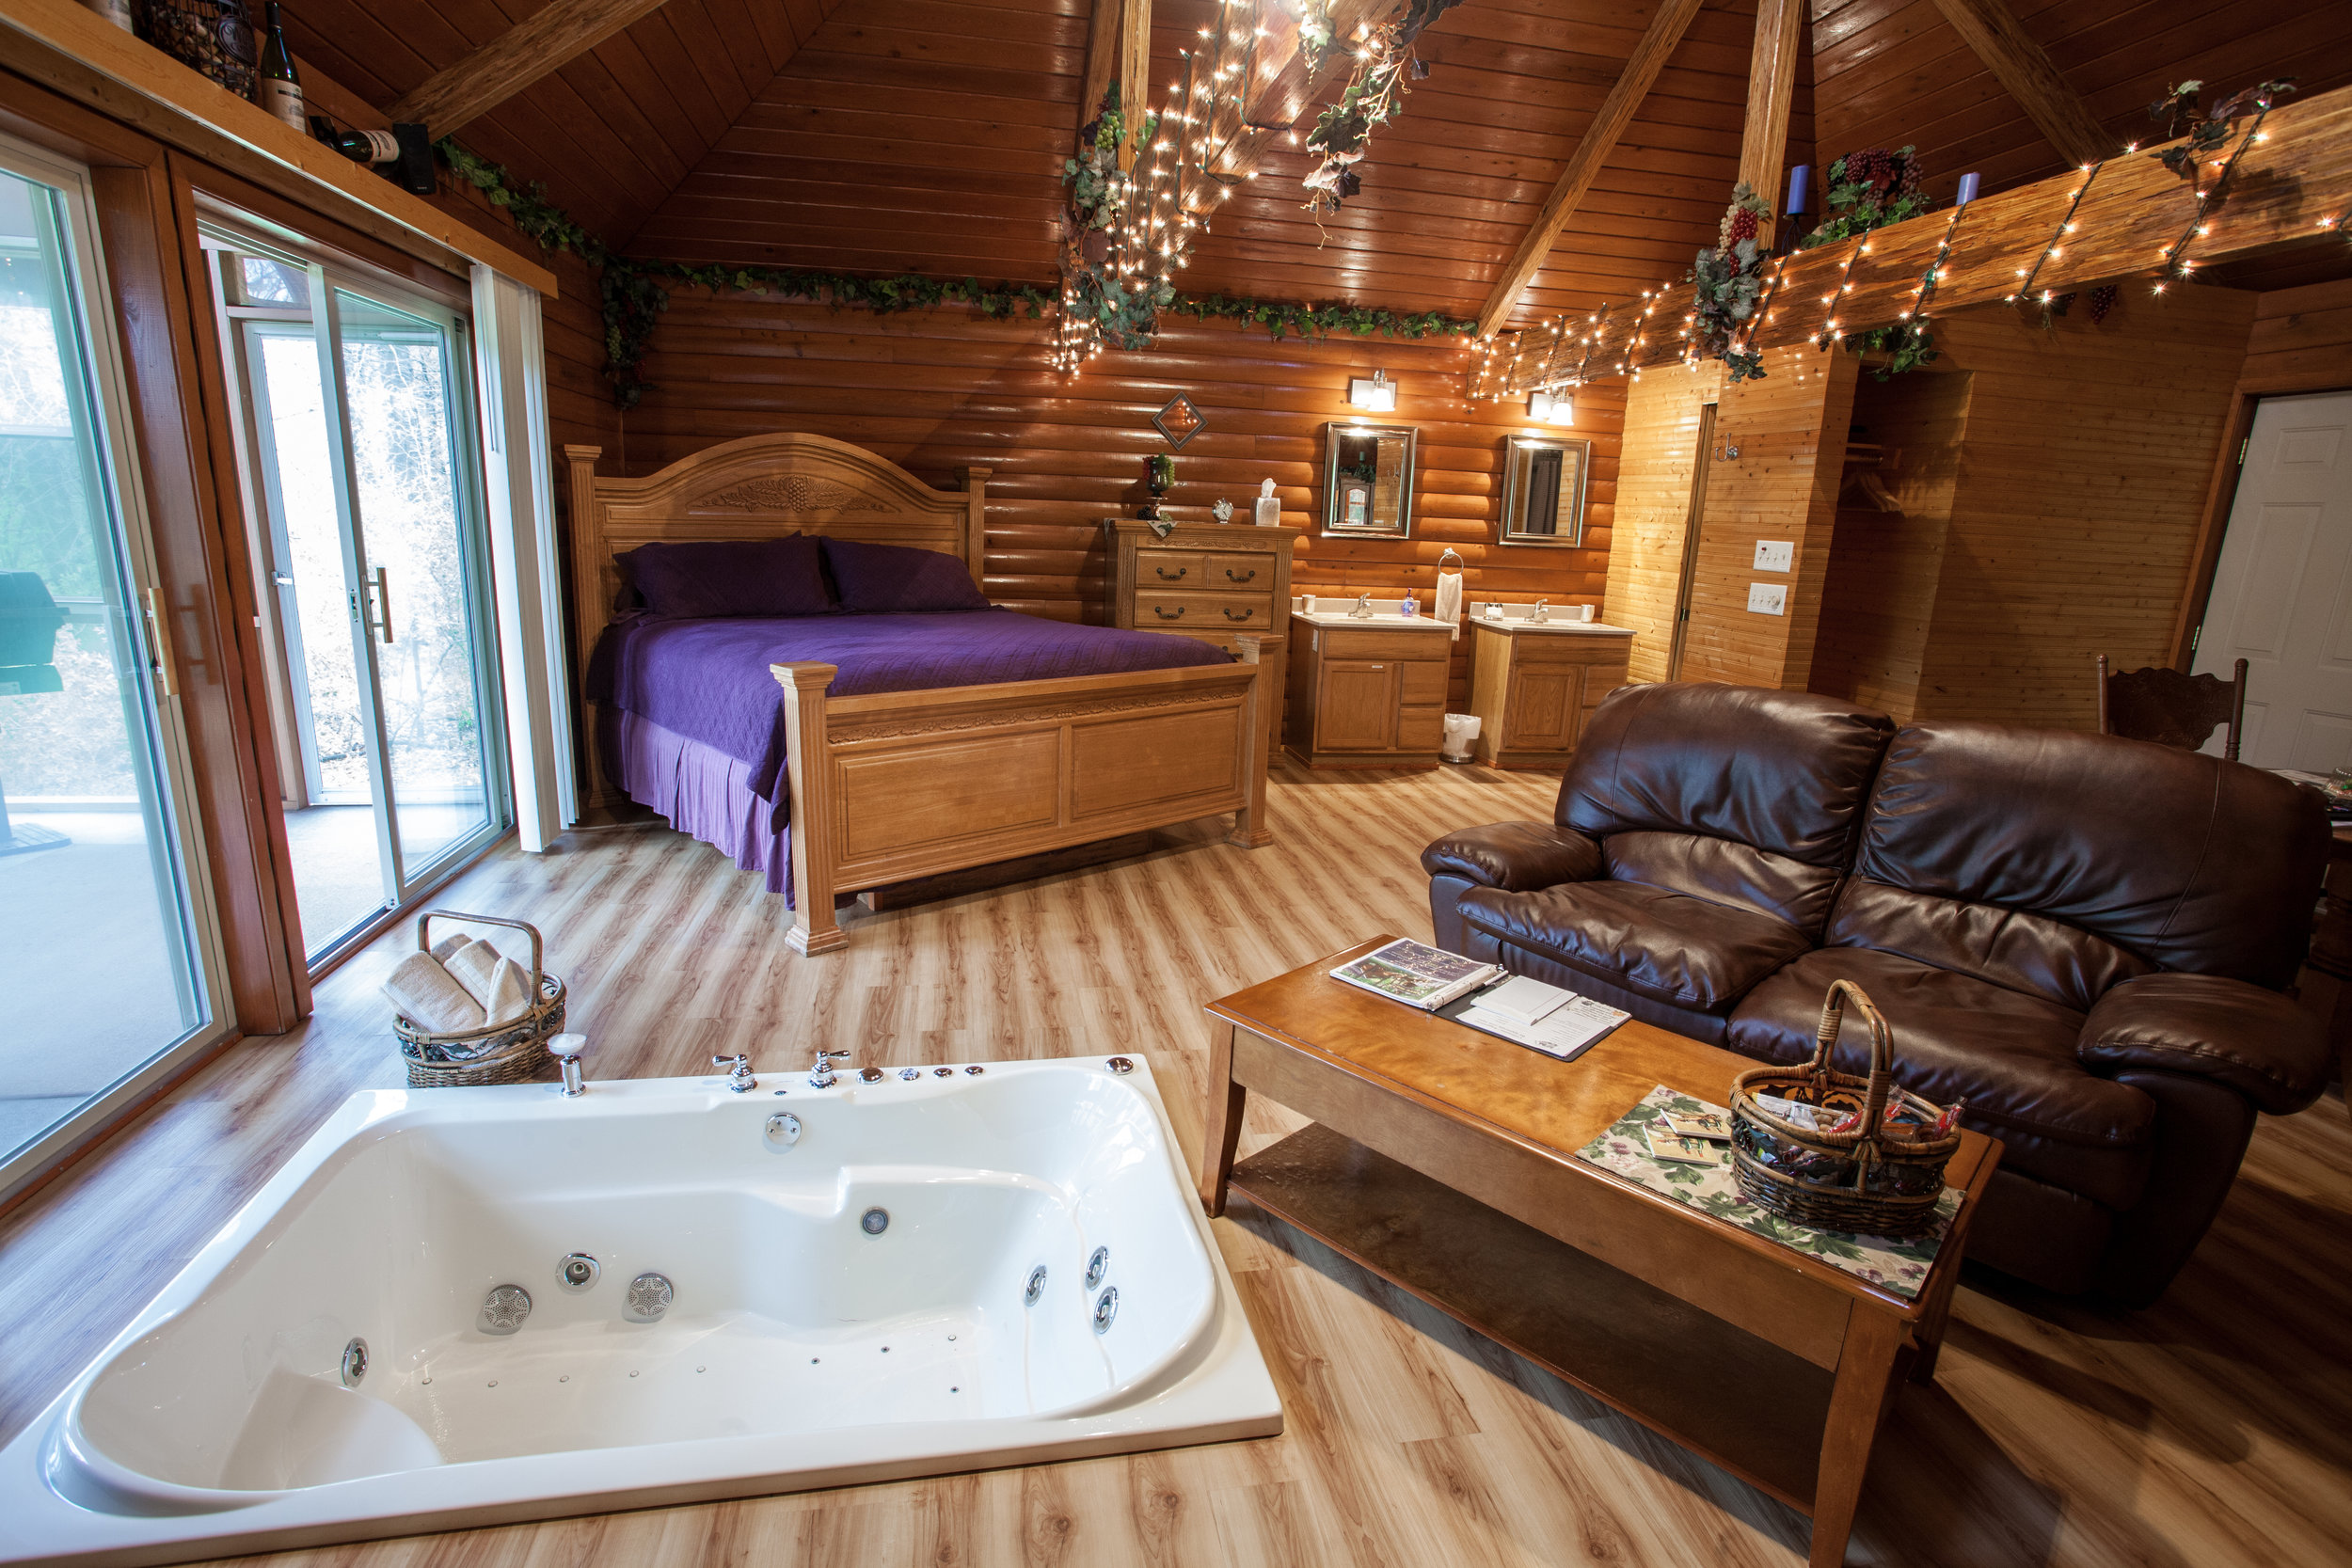 resort illinois in getaway lodge heartland all romantic cabins romatic suite